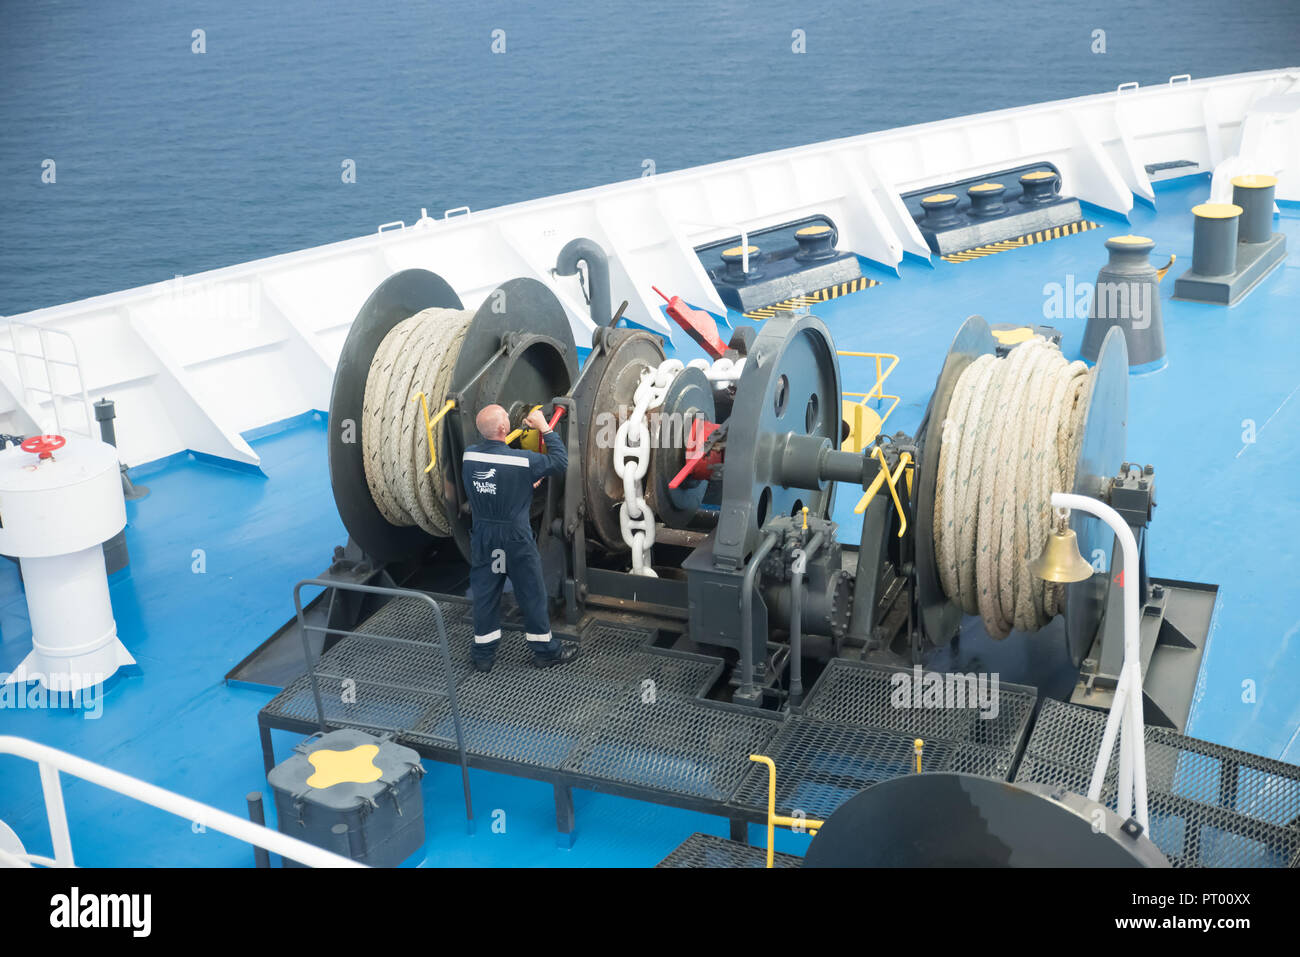 Aegean Sea, Greece/ July 17, 2018: Seaman working on foredeck of ferry boat - Stock Image